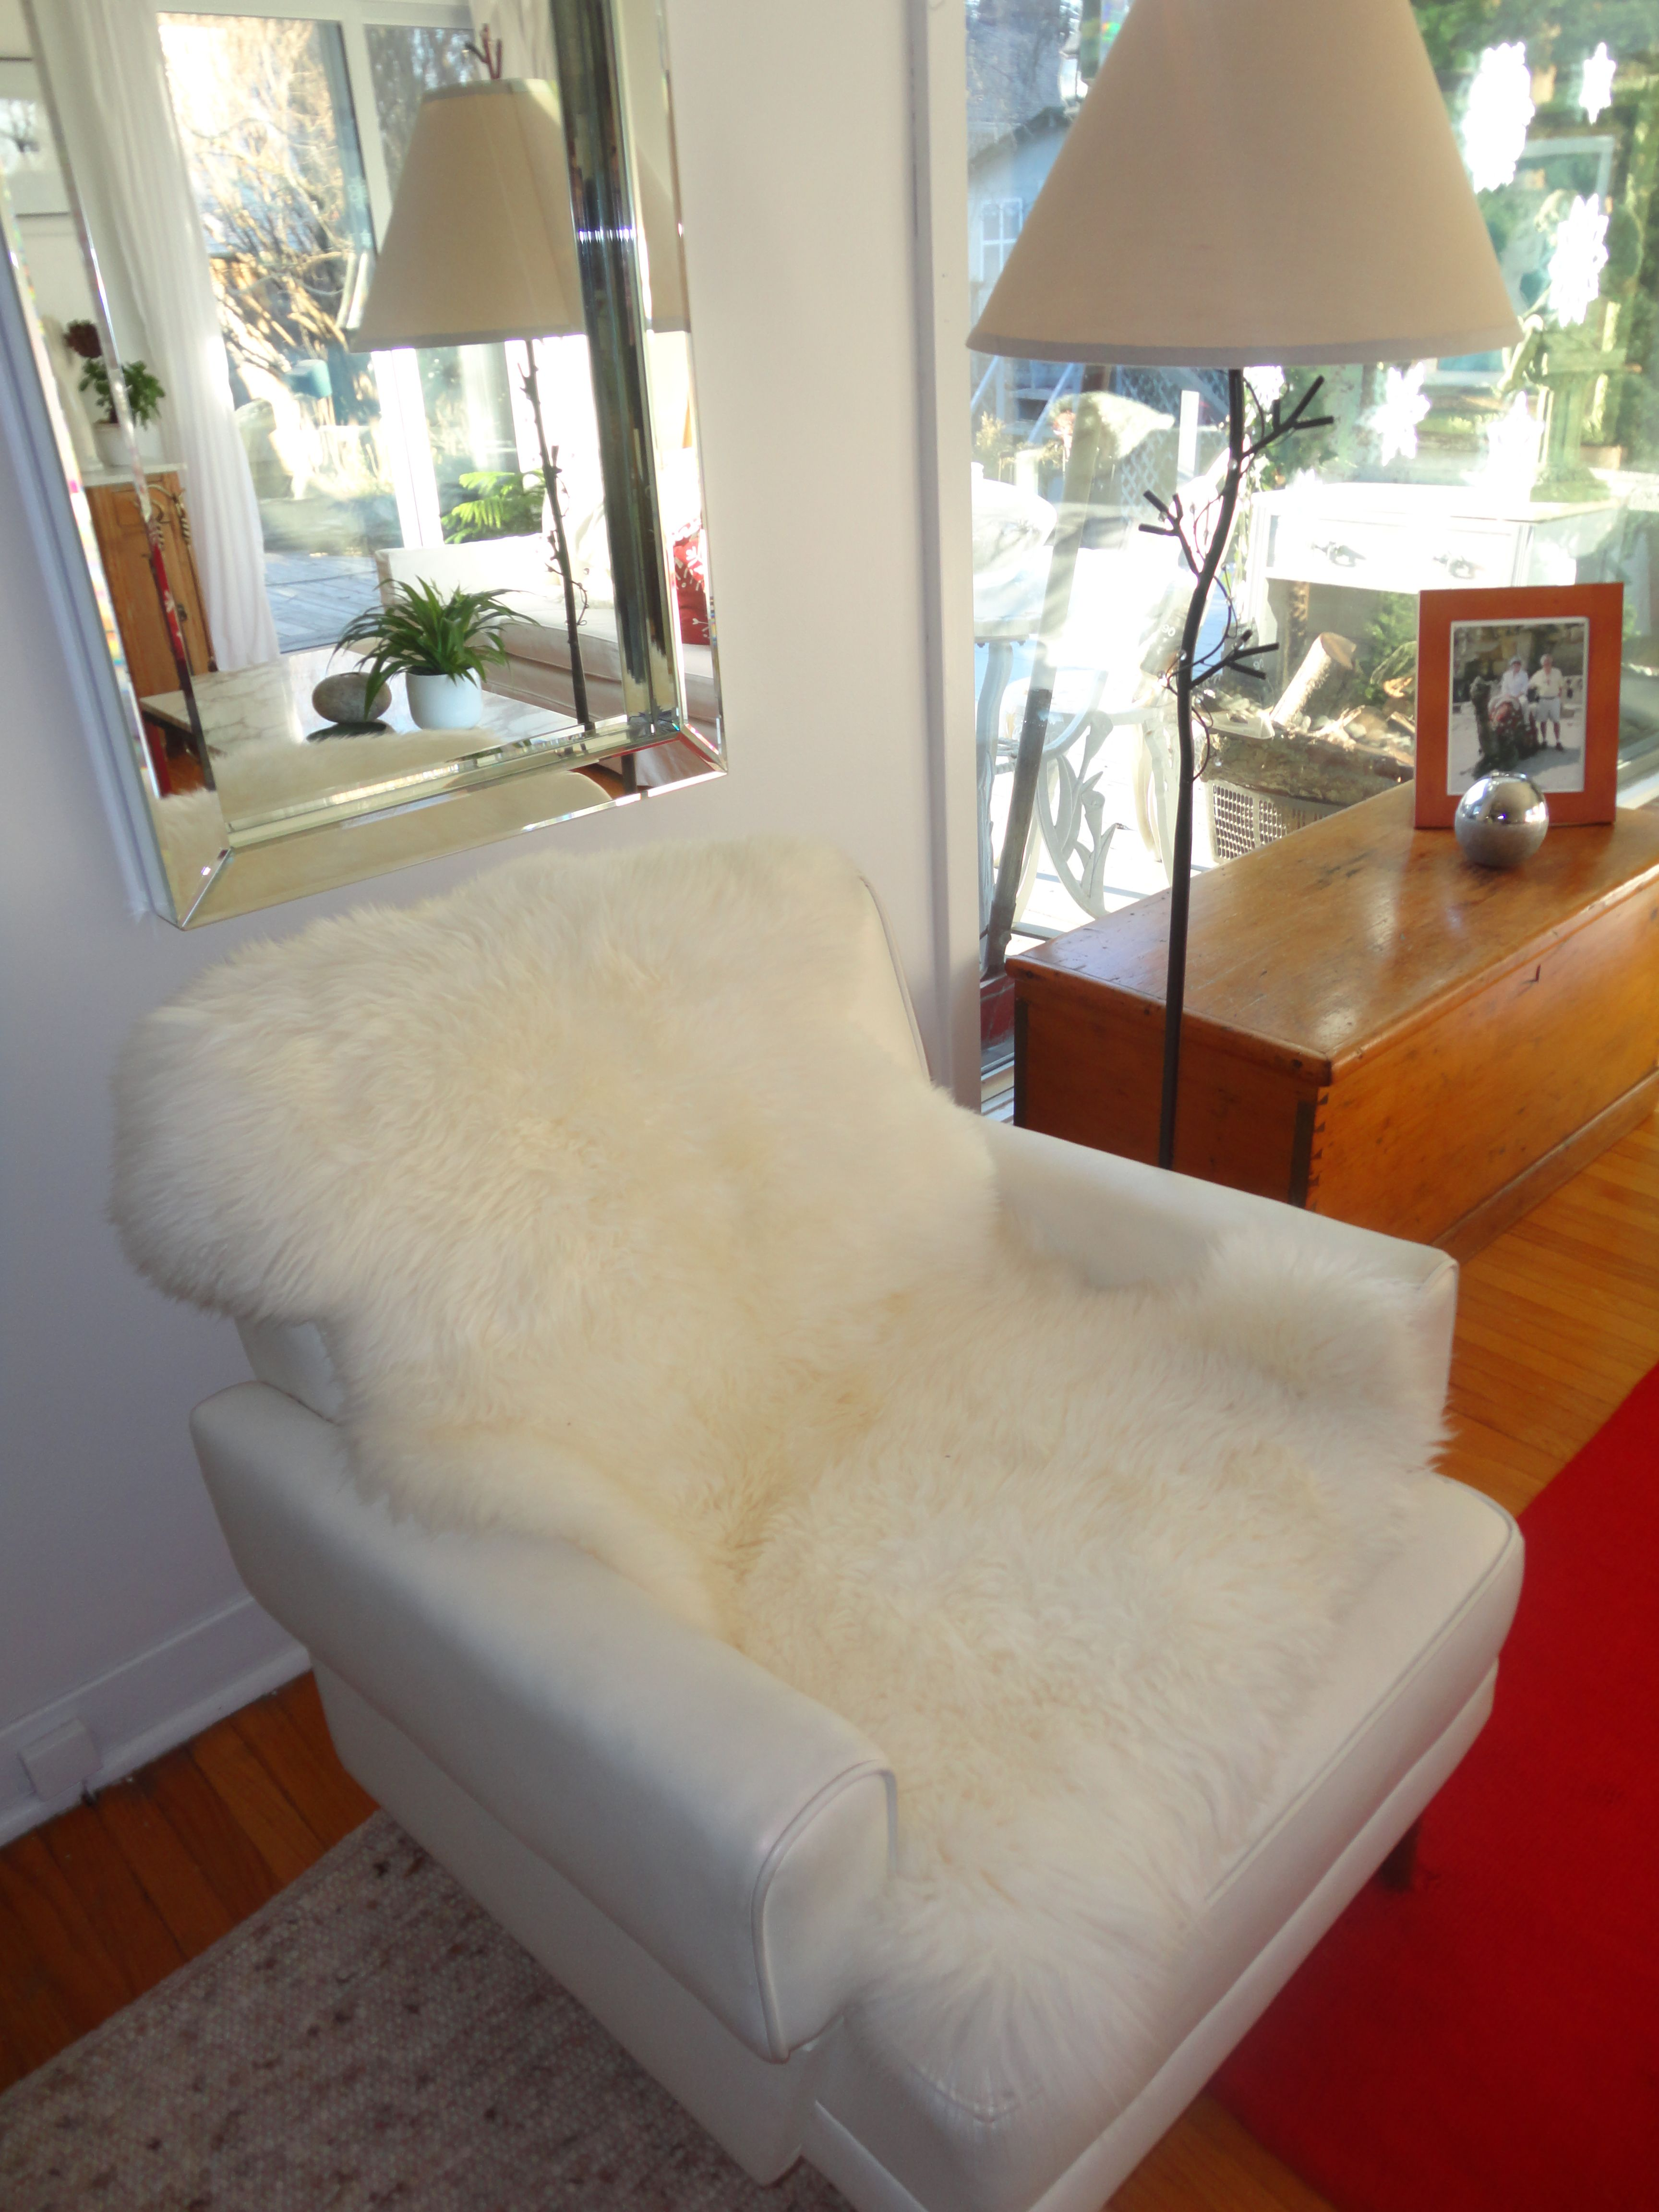 Sheepskin rug makes a leather chair cozy in the winter.